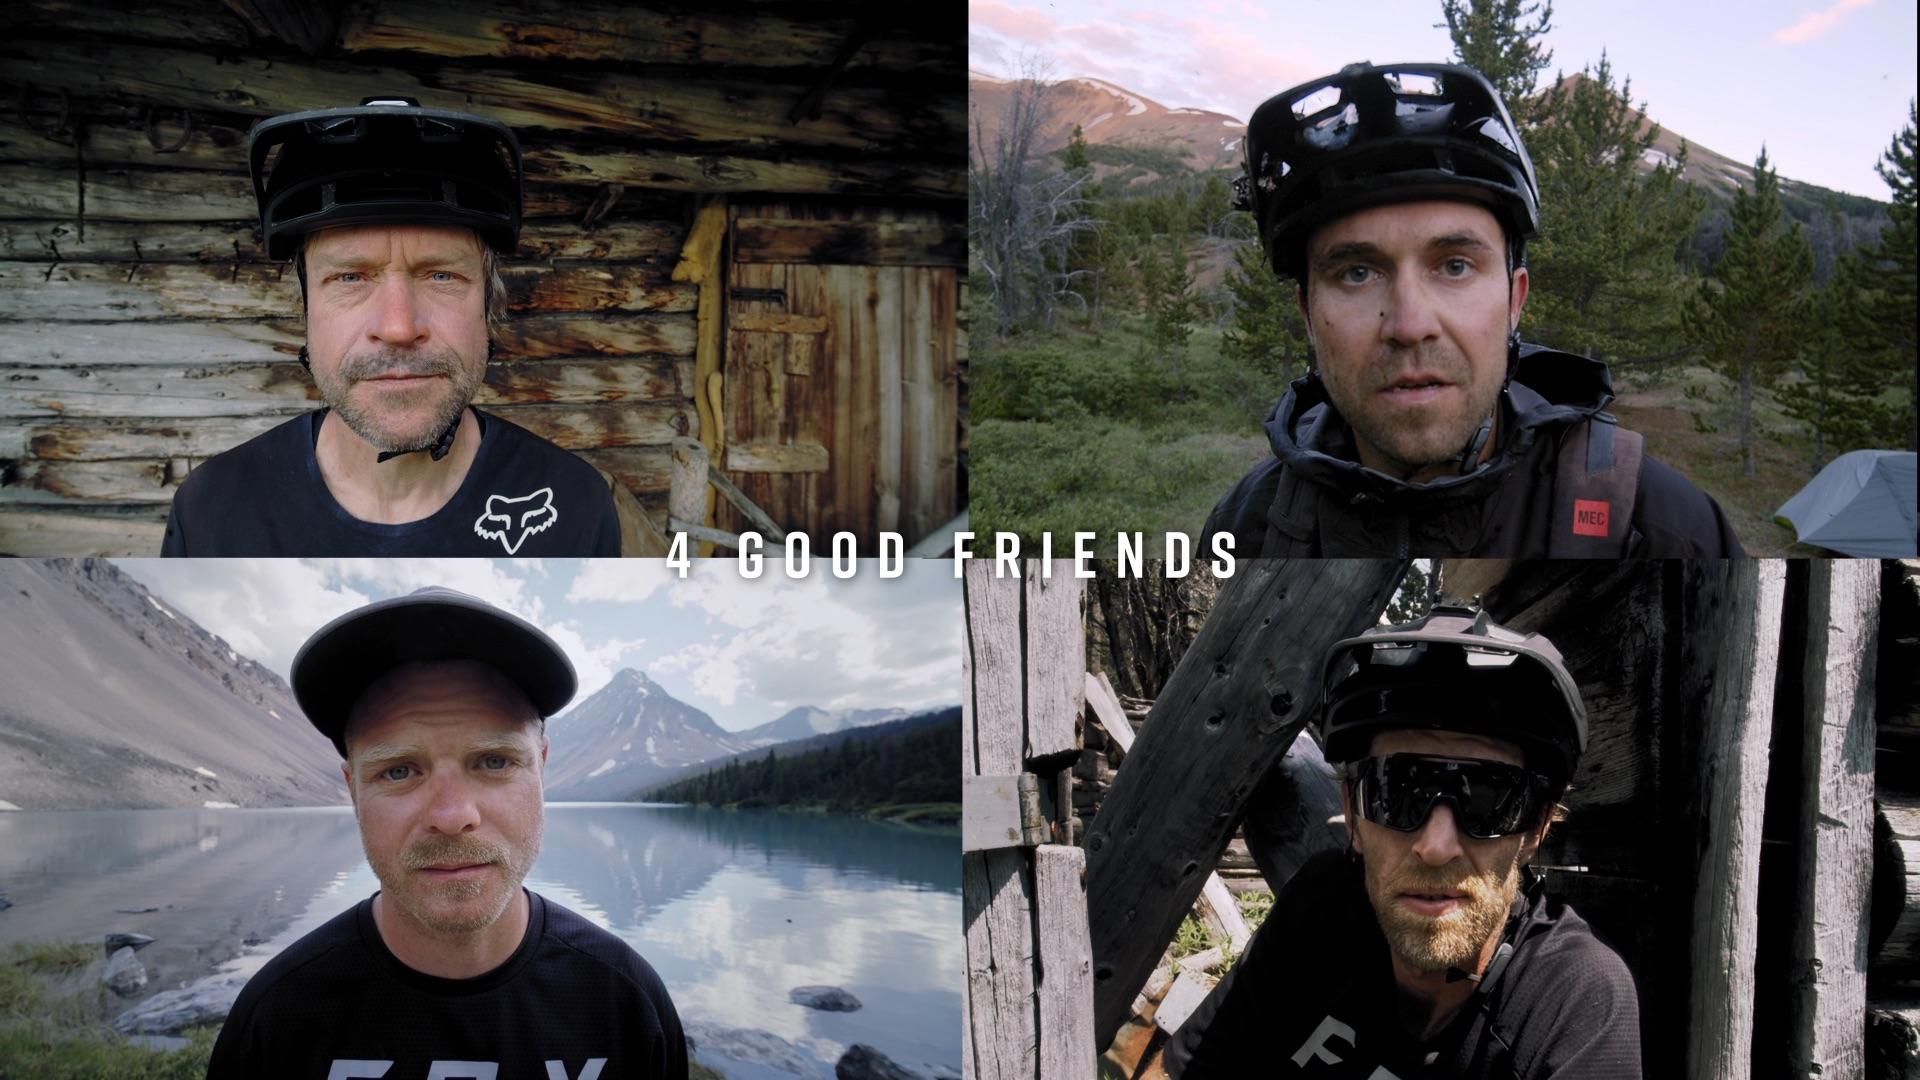 Send The Search - Kenny Smith In The Chilcotins Mountain Biking, Send The Search – Kenny Smith Mountain Biking The Chilcotins